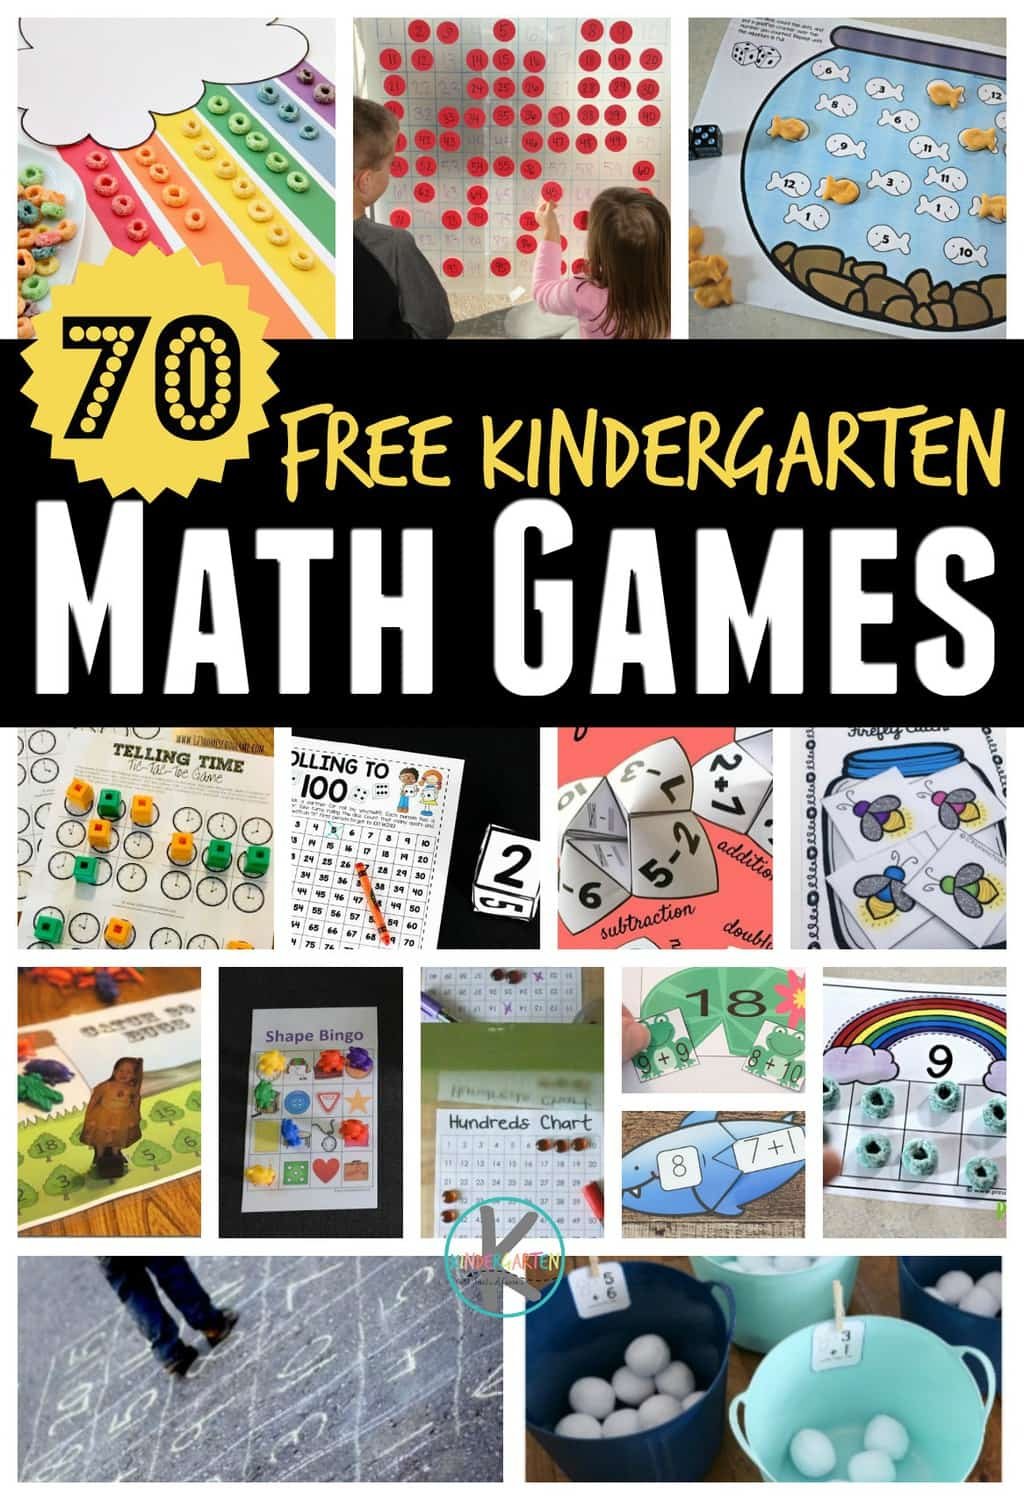 70 Free Kindergarten Math Games